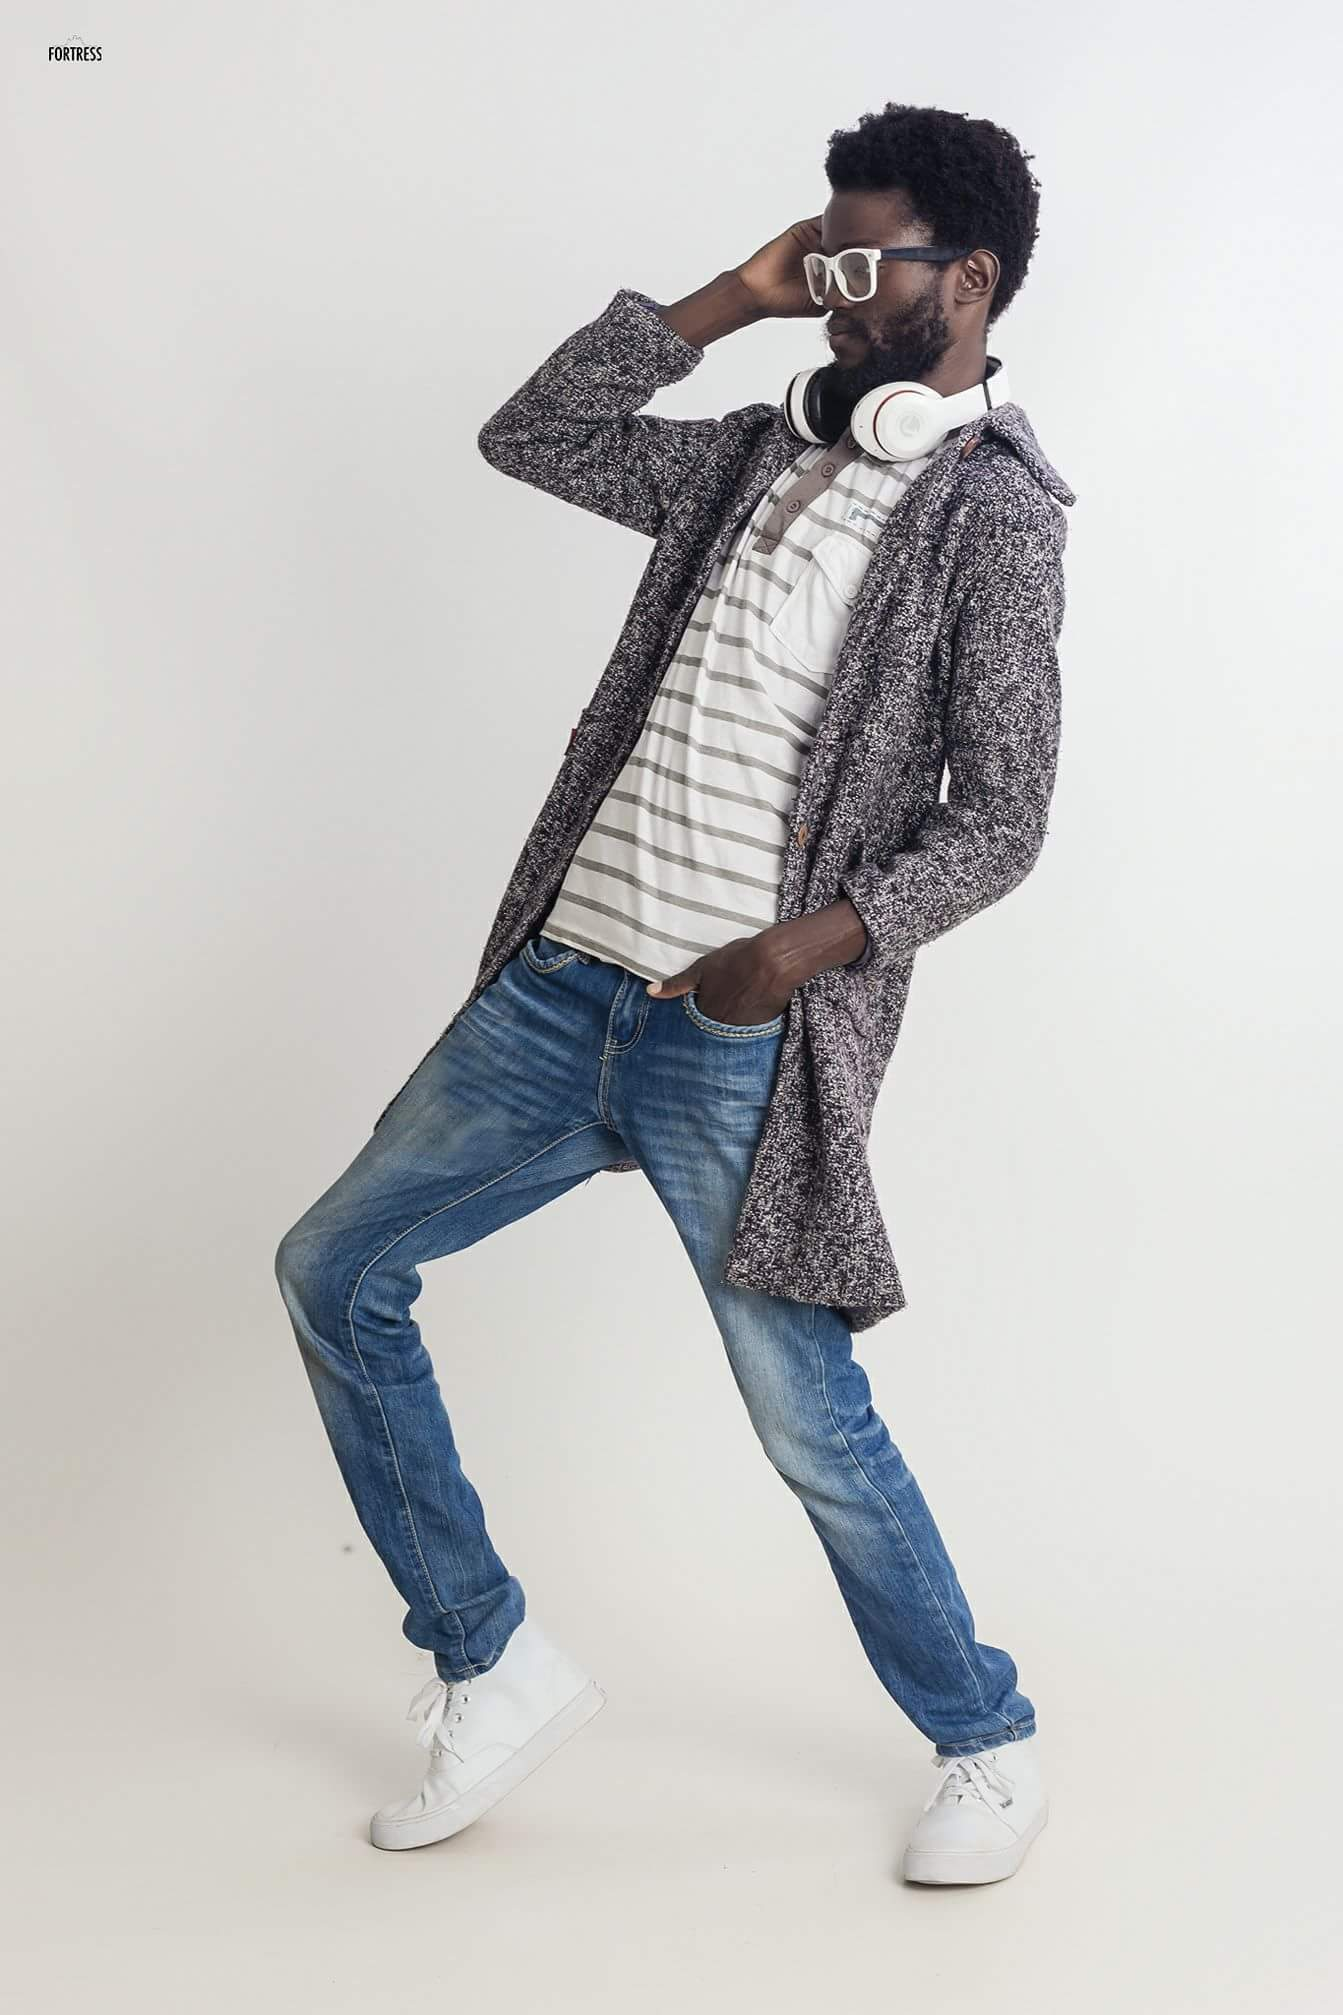 Mumba yachi rocks out some new swag | Check It out